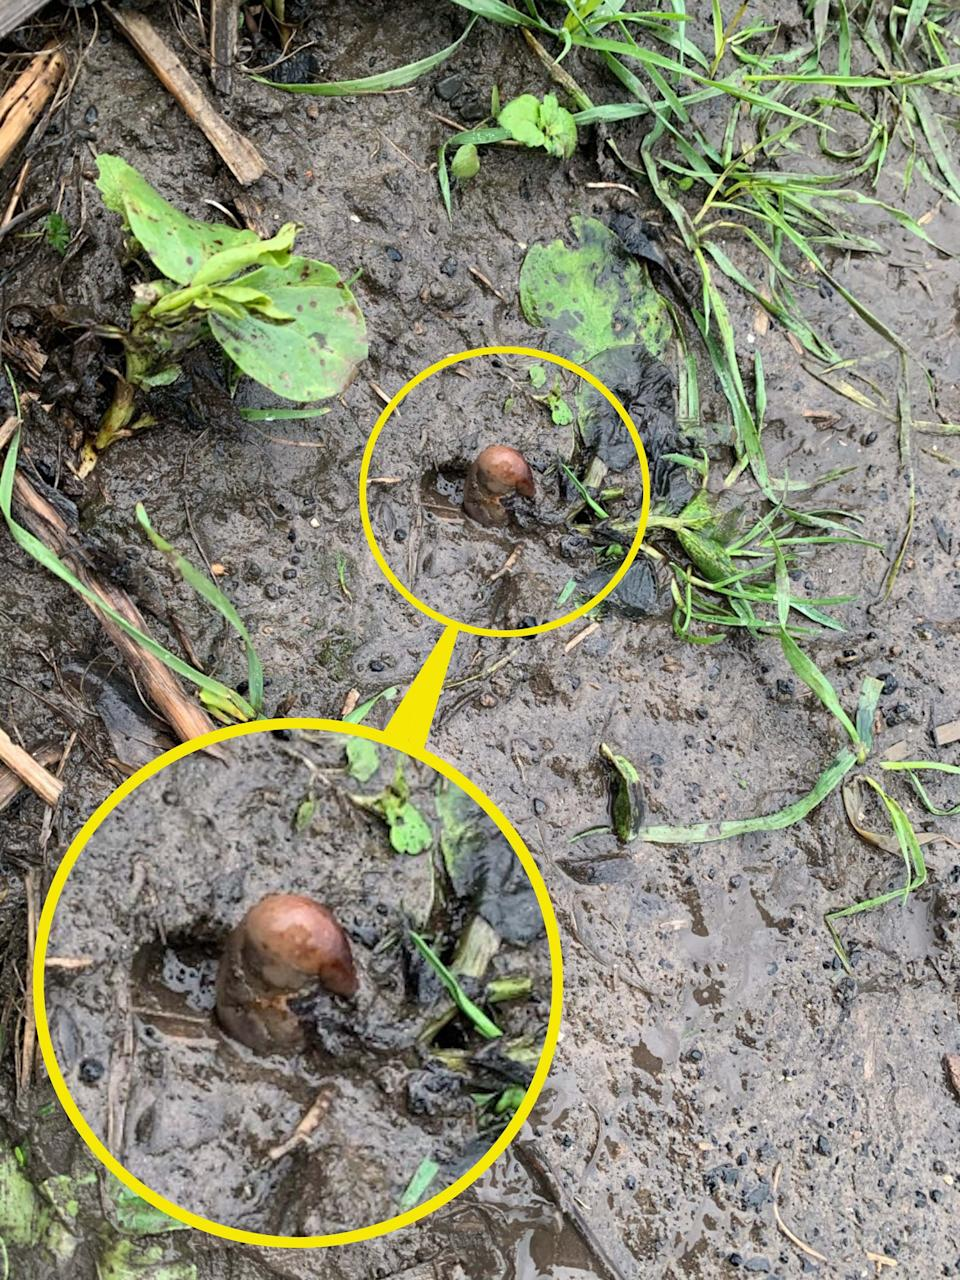 The potato was pointing up out of the ground in a muddy field (Caters)